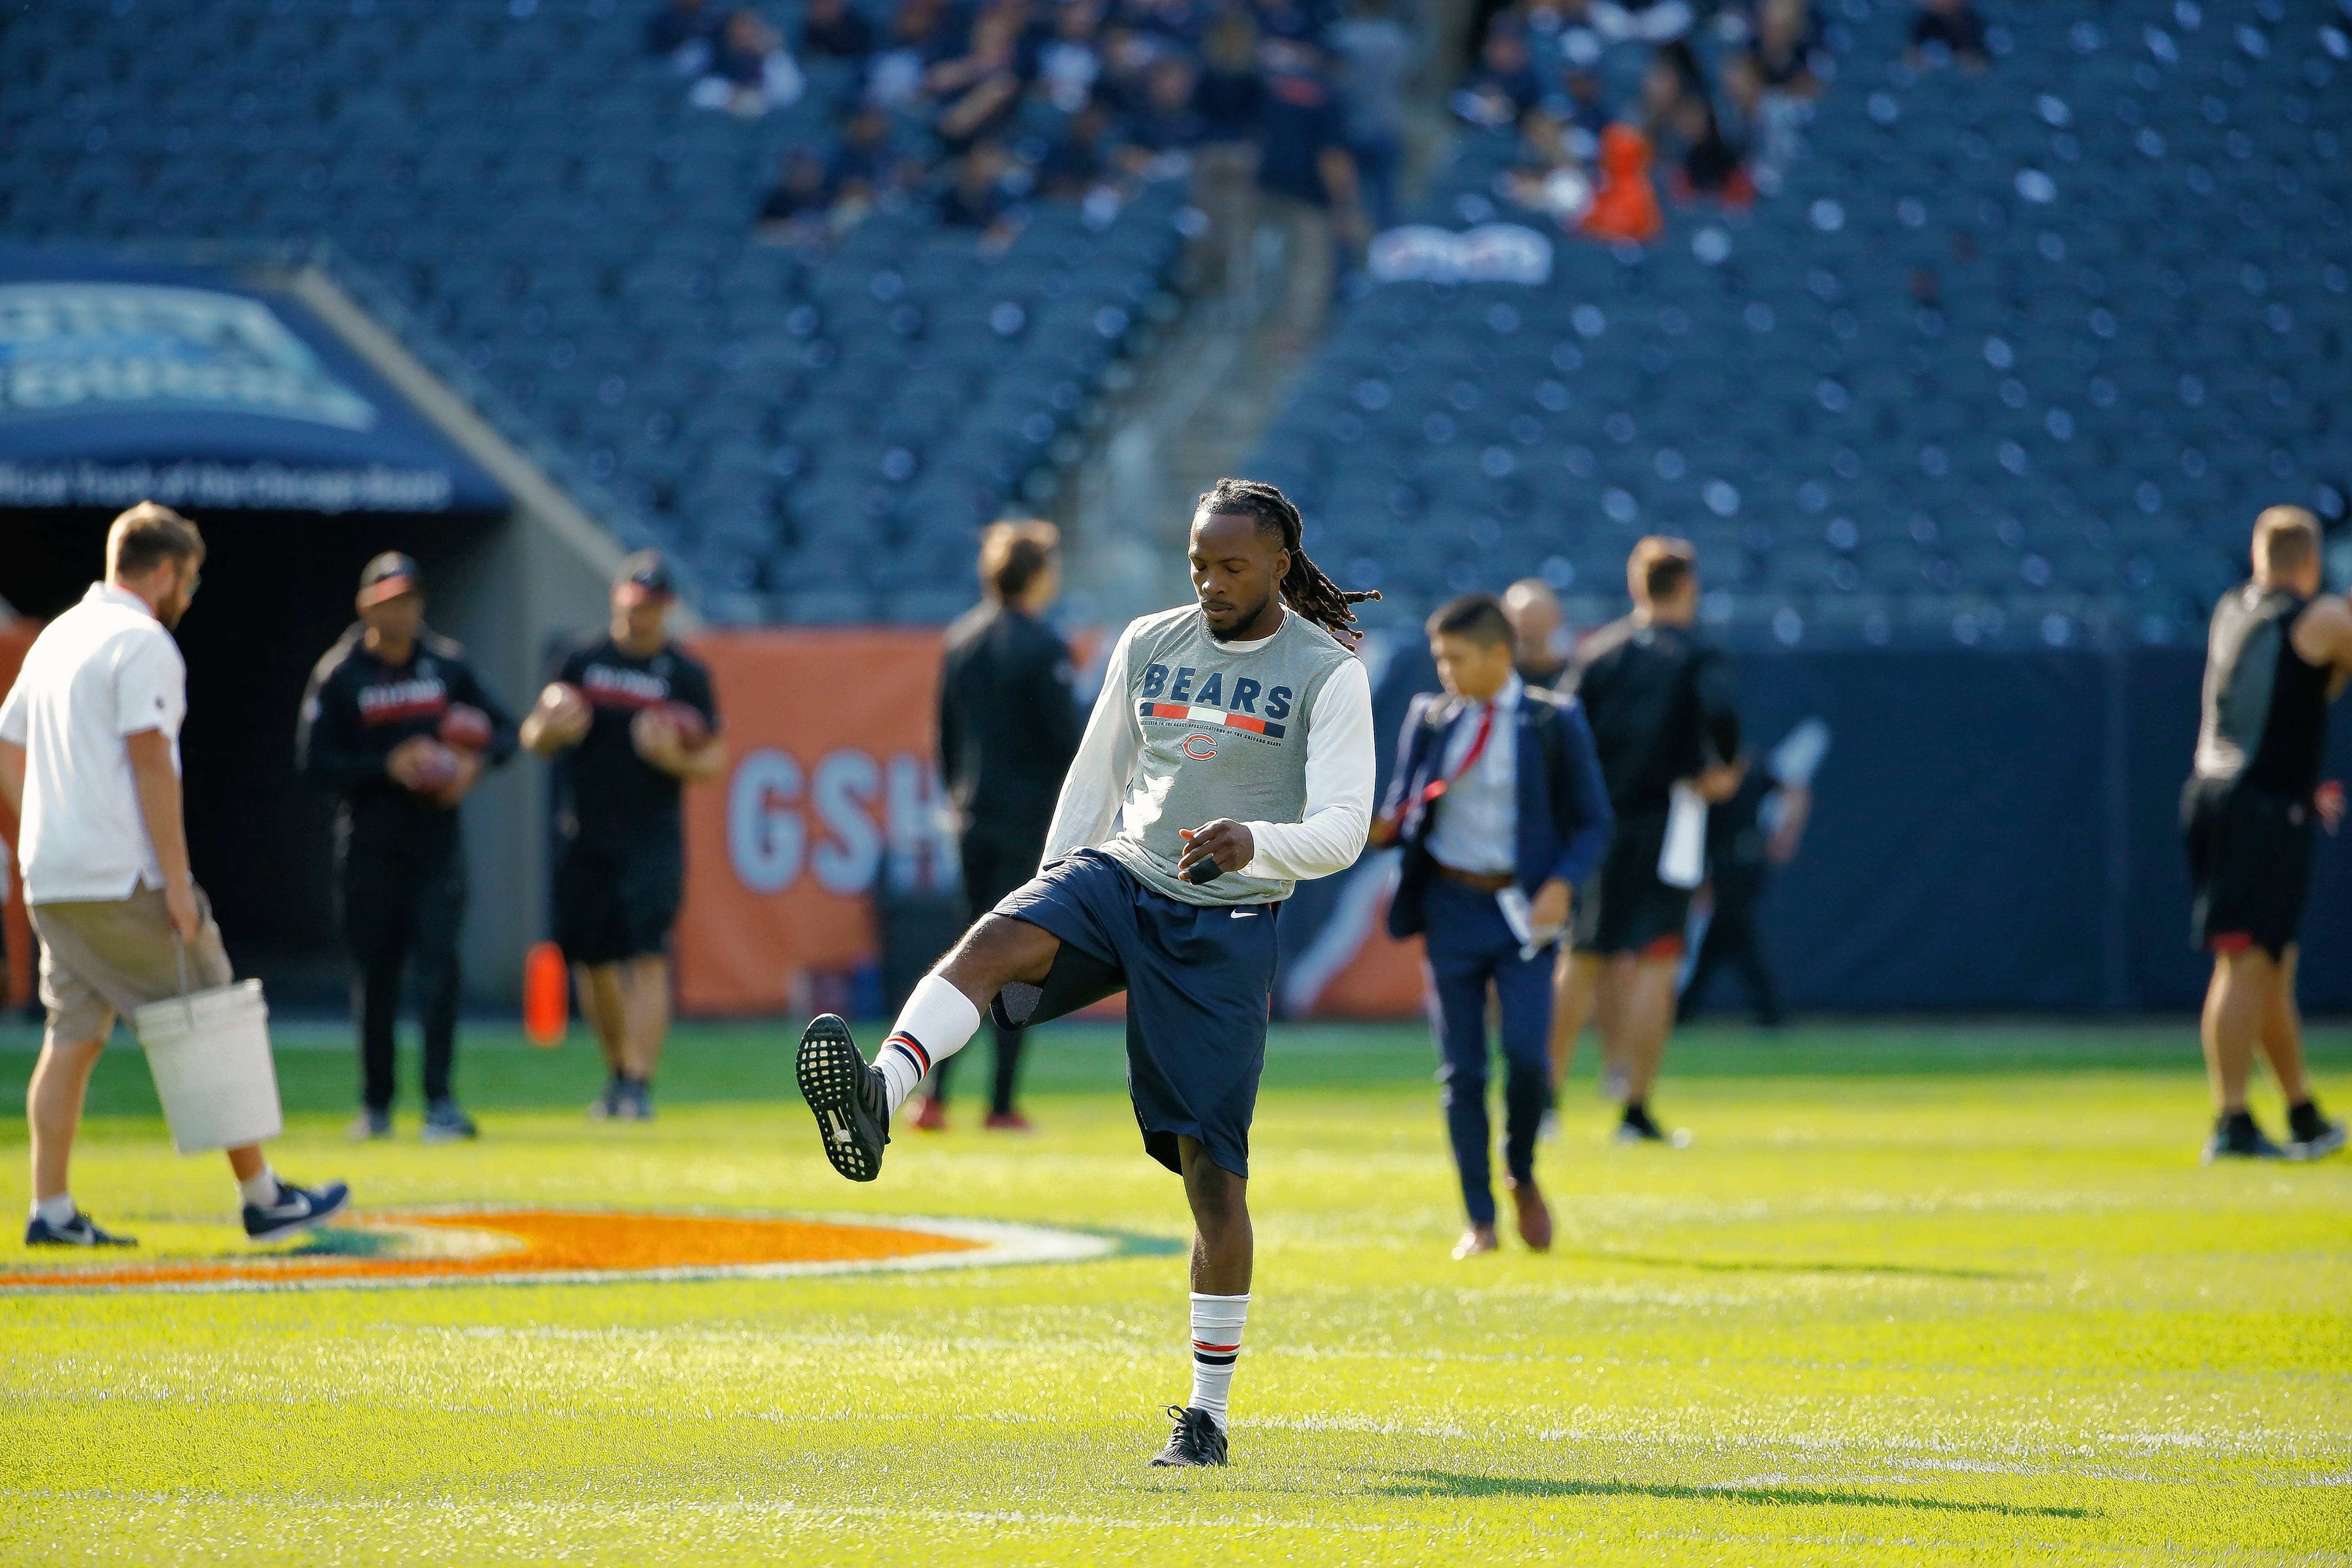 Bears Wheaton eager to get back on field, but he's still questionable